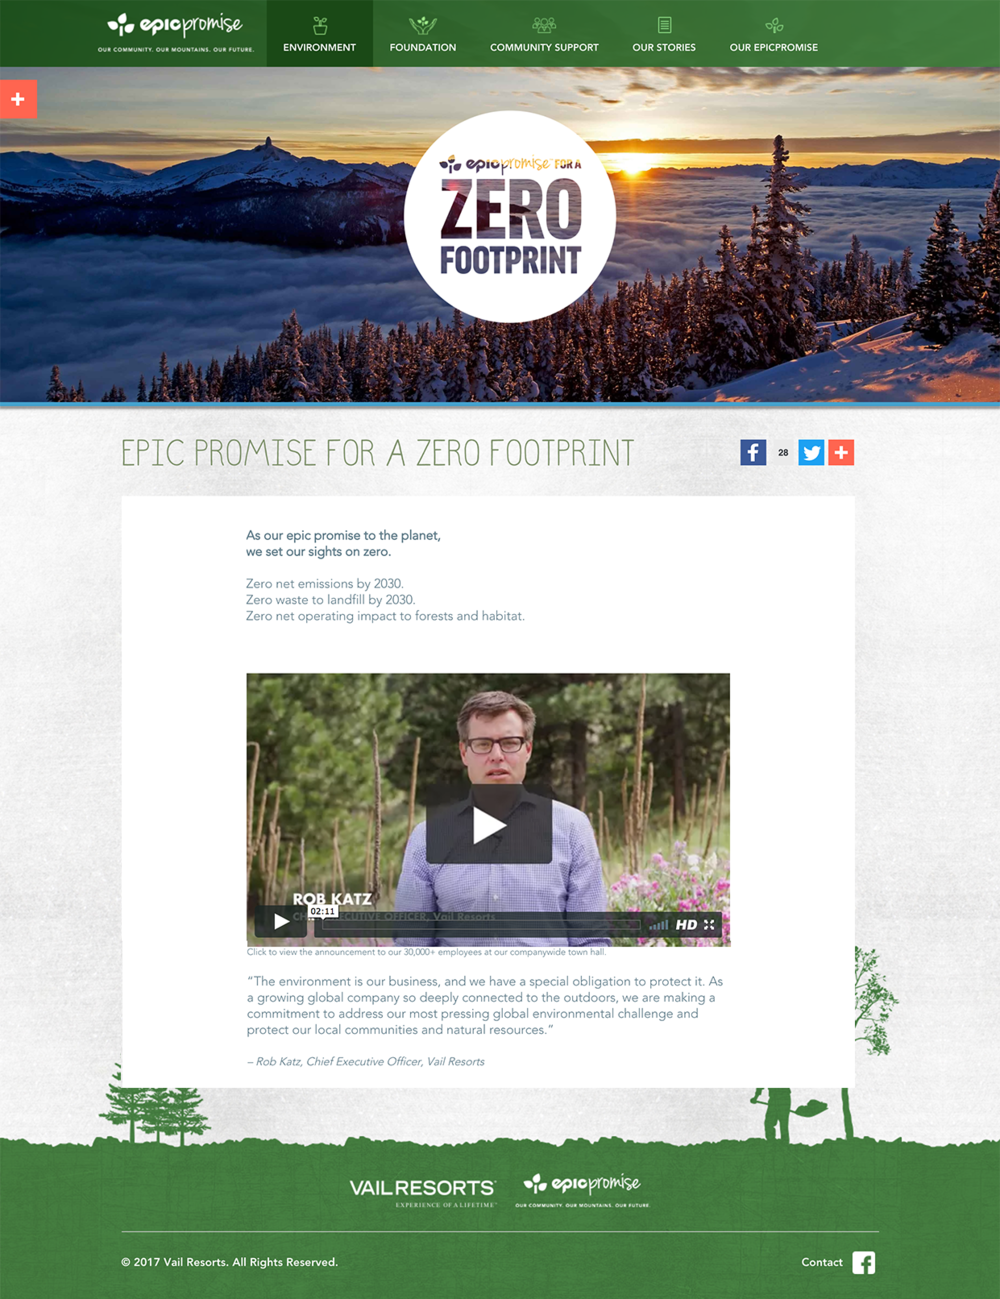 Vail Resorts: Epic Promise for a Zero Footprint Website